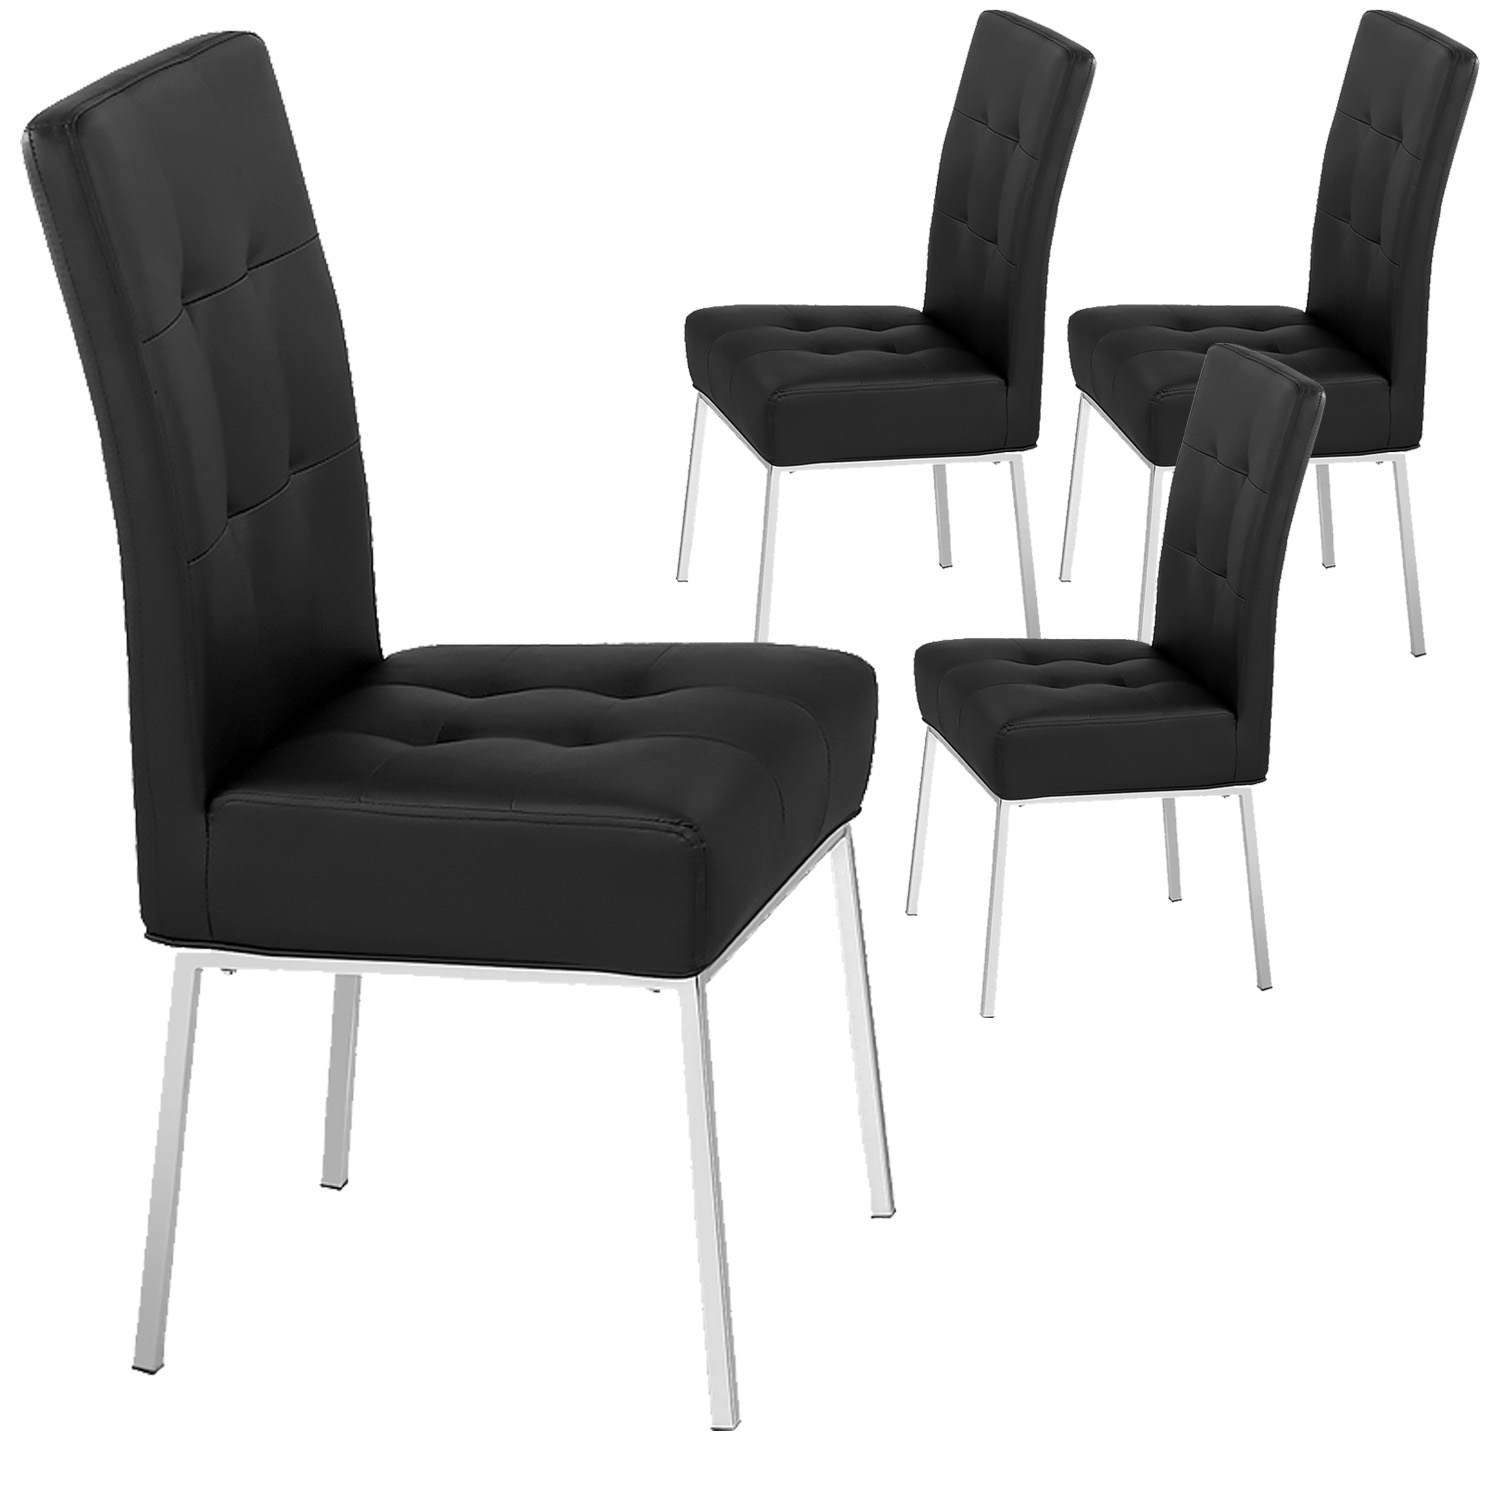 deco in paris lot de 4 chaises noir baroko baroko x4 noir. Black Bedroom Furniture Sets. Home Design Ideas